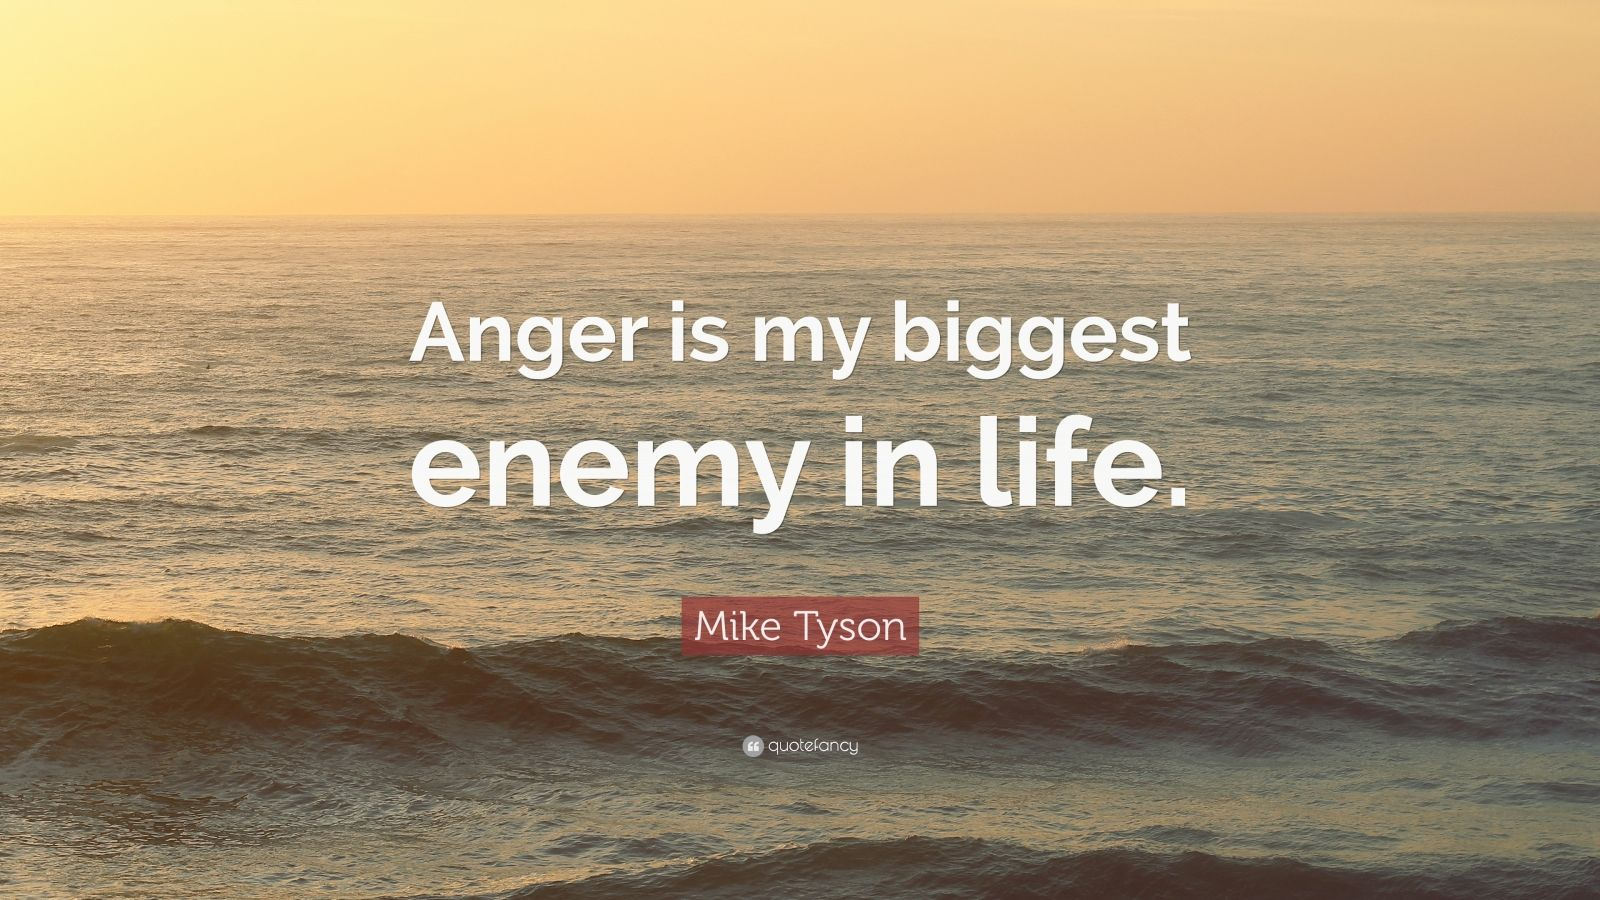 Quotes About Anger And Rage: Mike Tyson Quotes (100 Wallpapers)